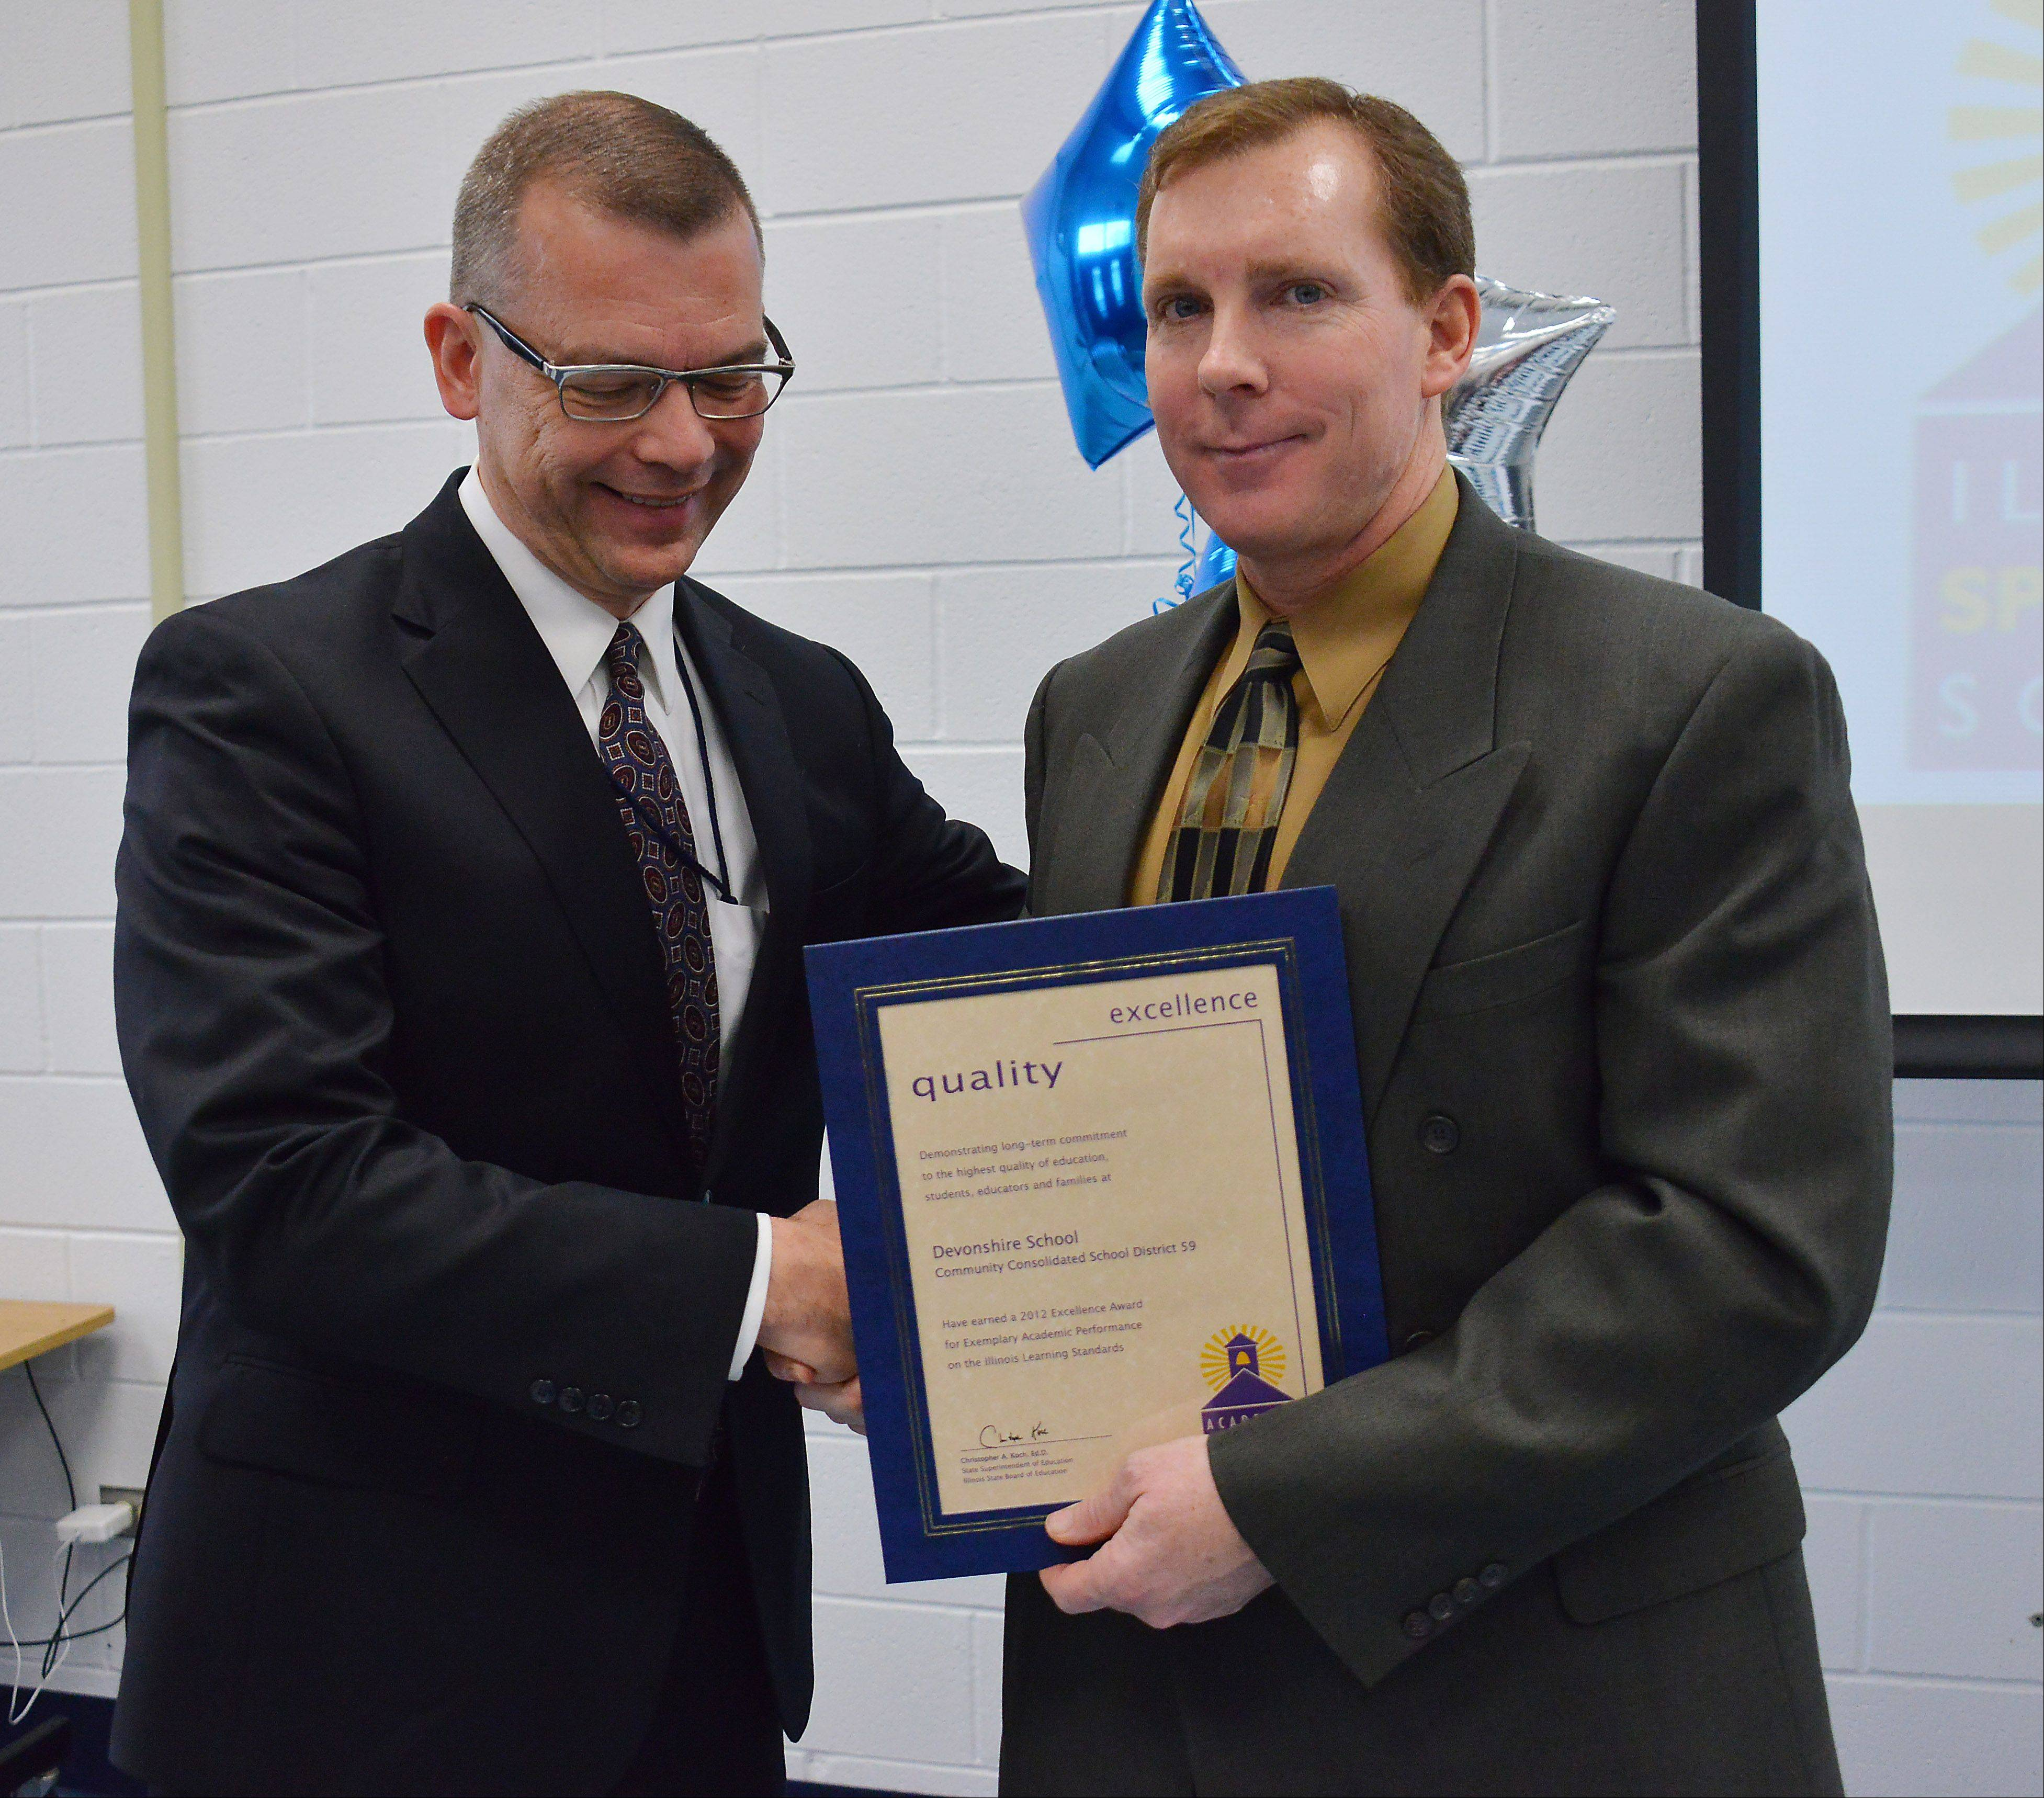 Elk Grove Township District 59's Devonshire Elementary School Principal Randy Steinkamp (right) received the Academic Excellence Award on Monday from State Superintendent of Education Christopher Koch.